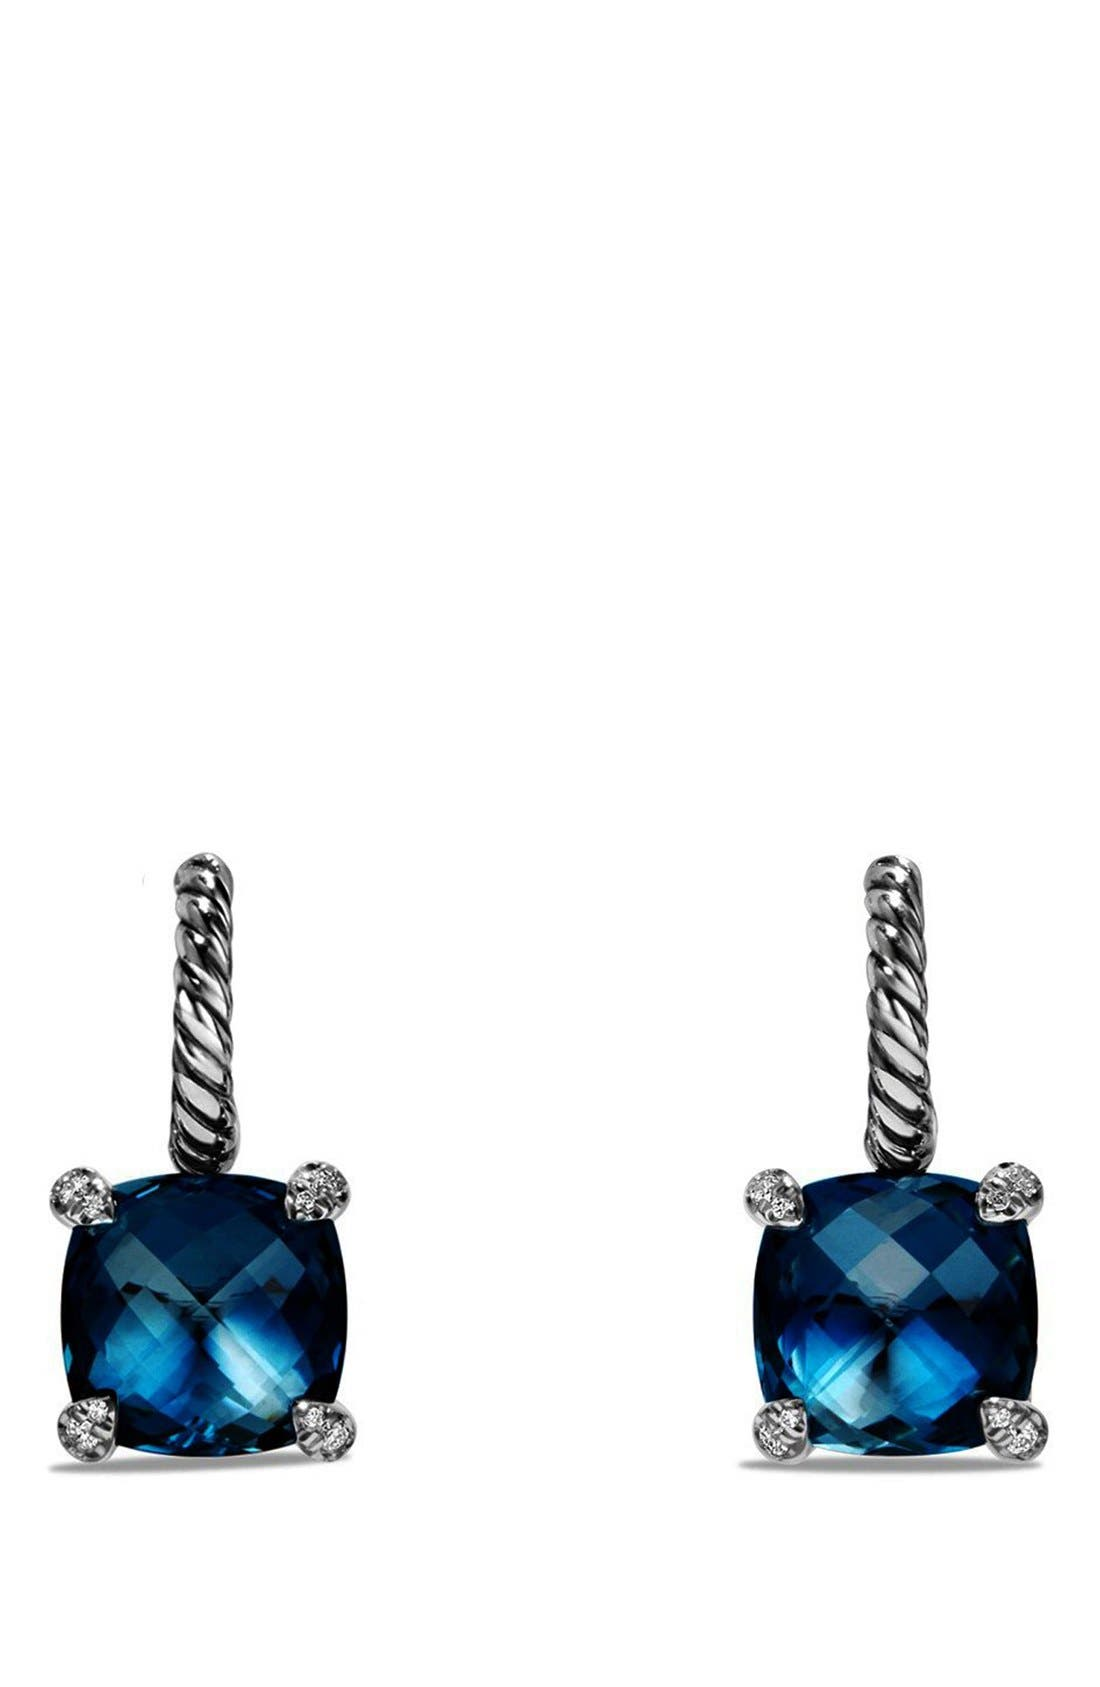 DAVID YURMAN Châtelaine Drop Earrings with Semiprecious Stones and Diamonds